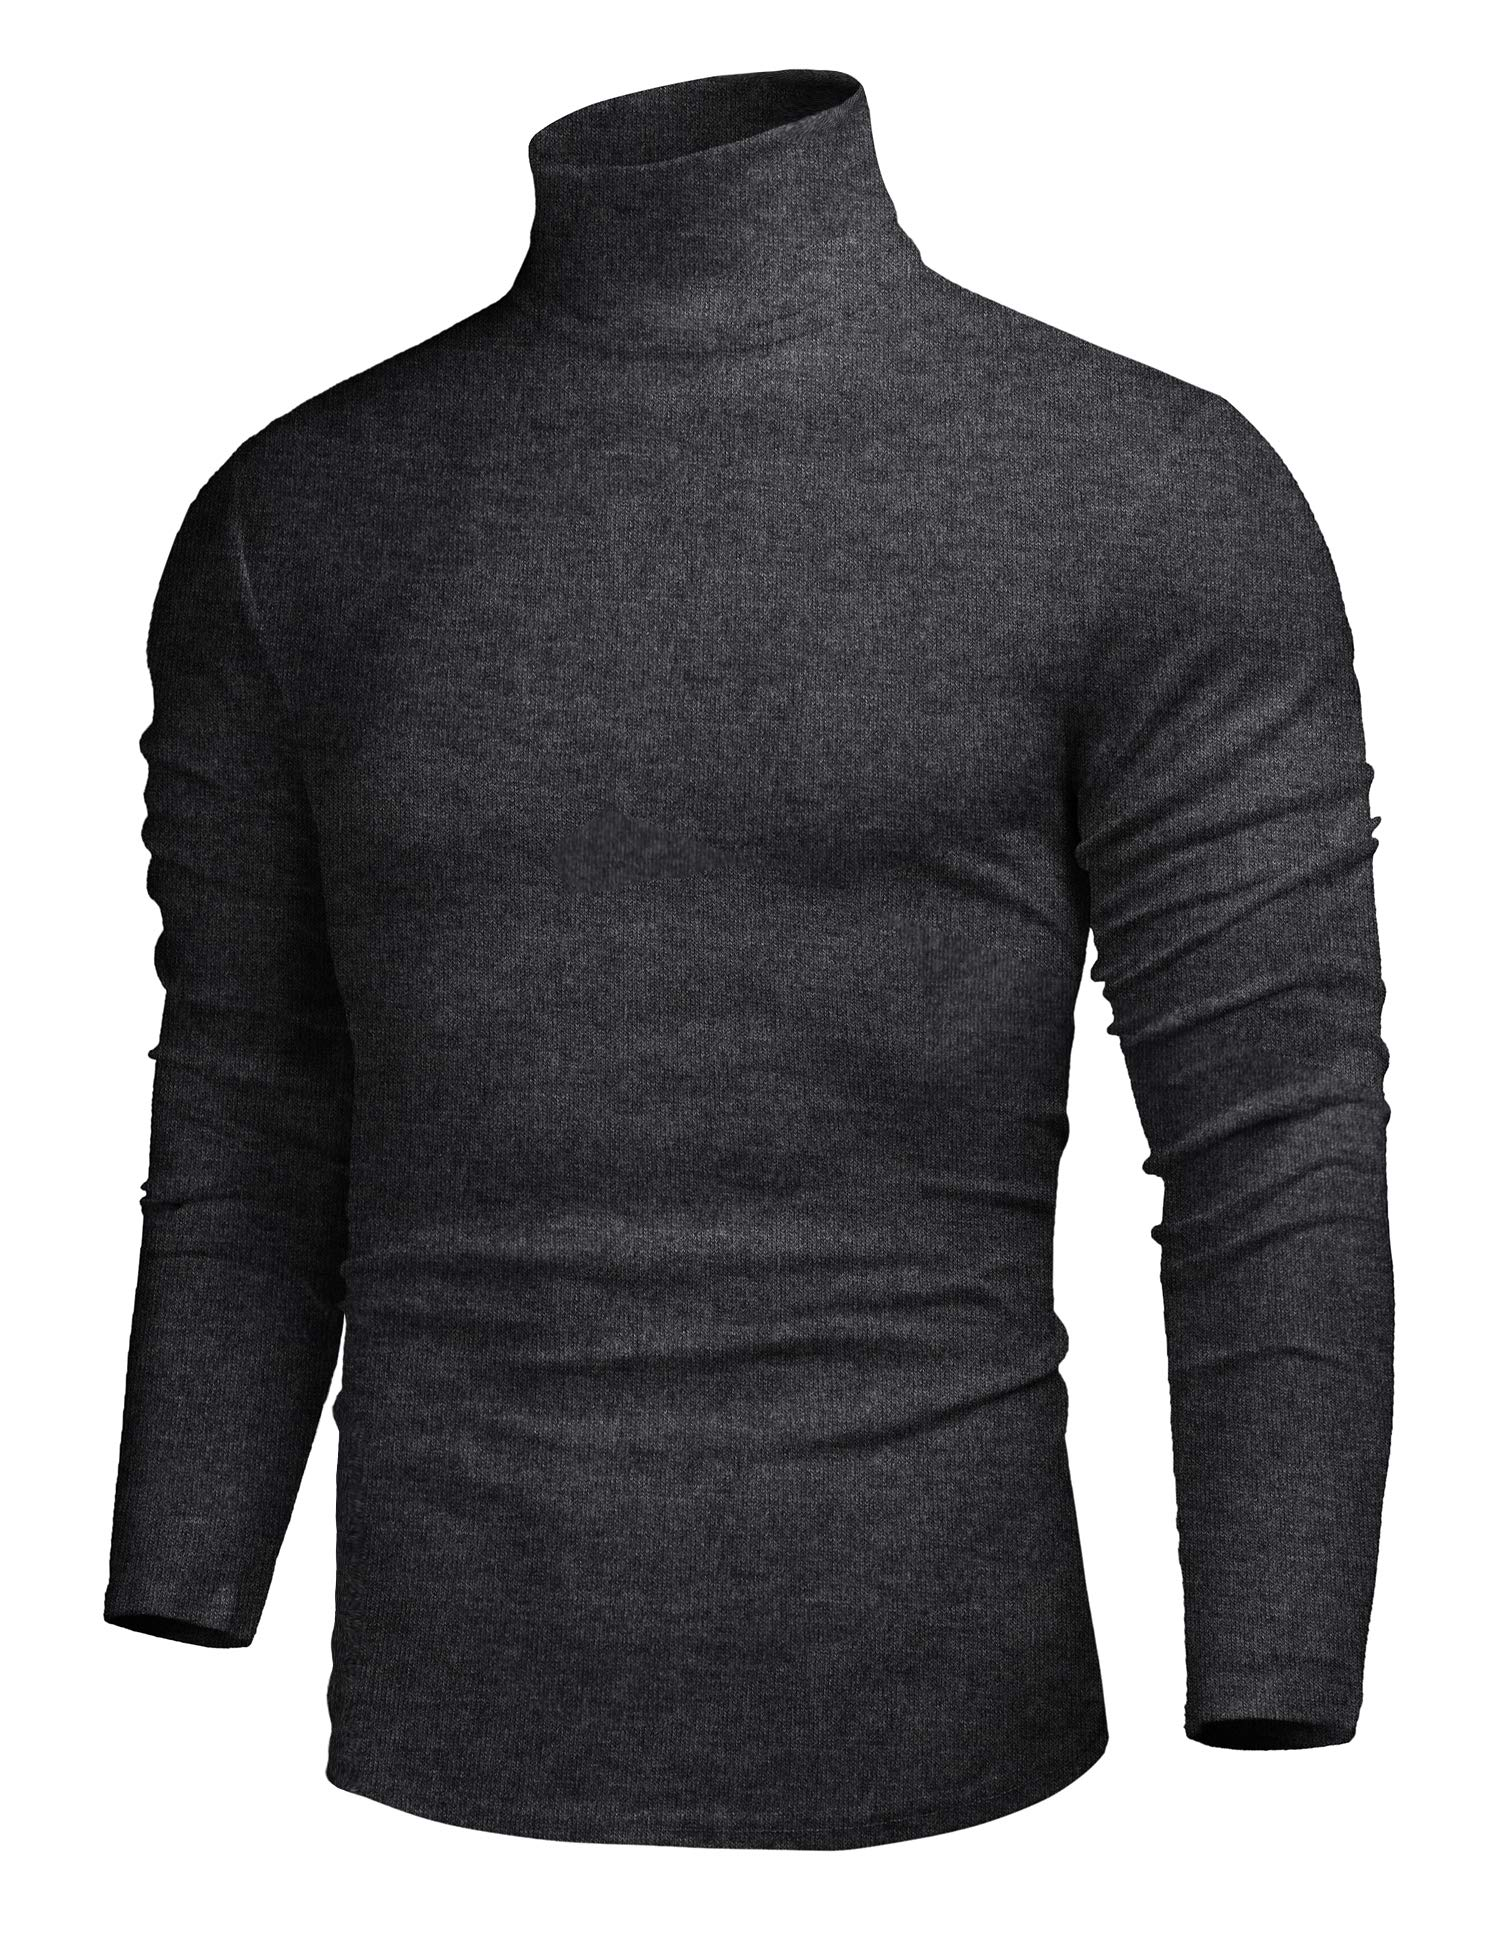 SELX Men Plus Size Plus Size Classic Solid Turtle Neck Slim Thermal Knit Pullover Sweaters